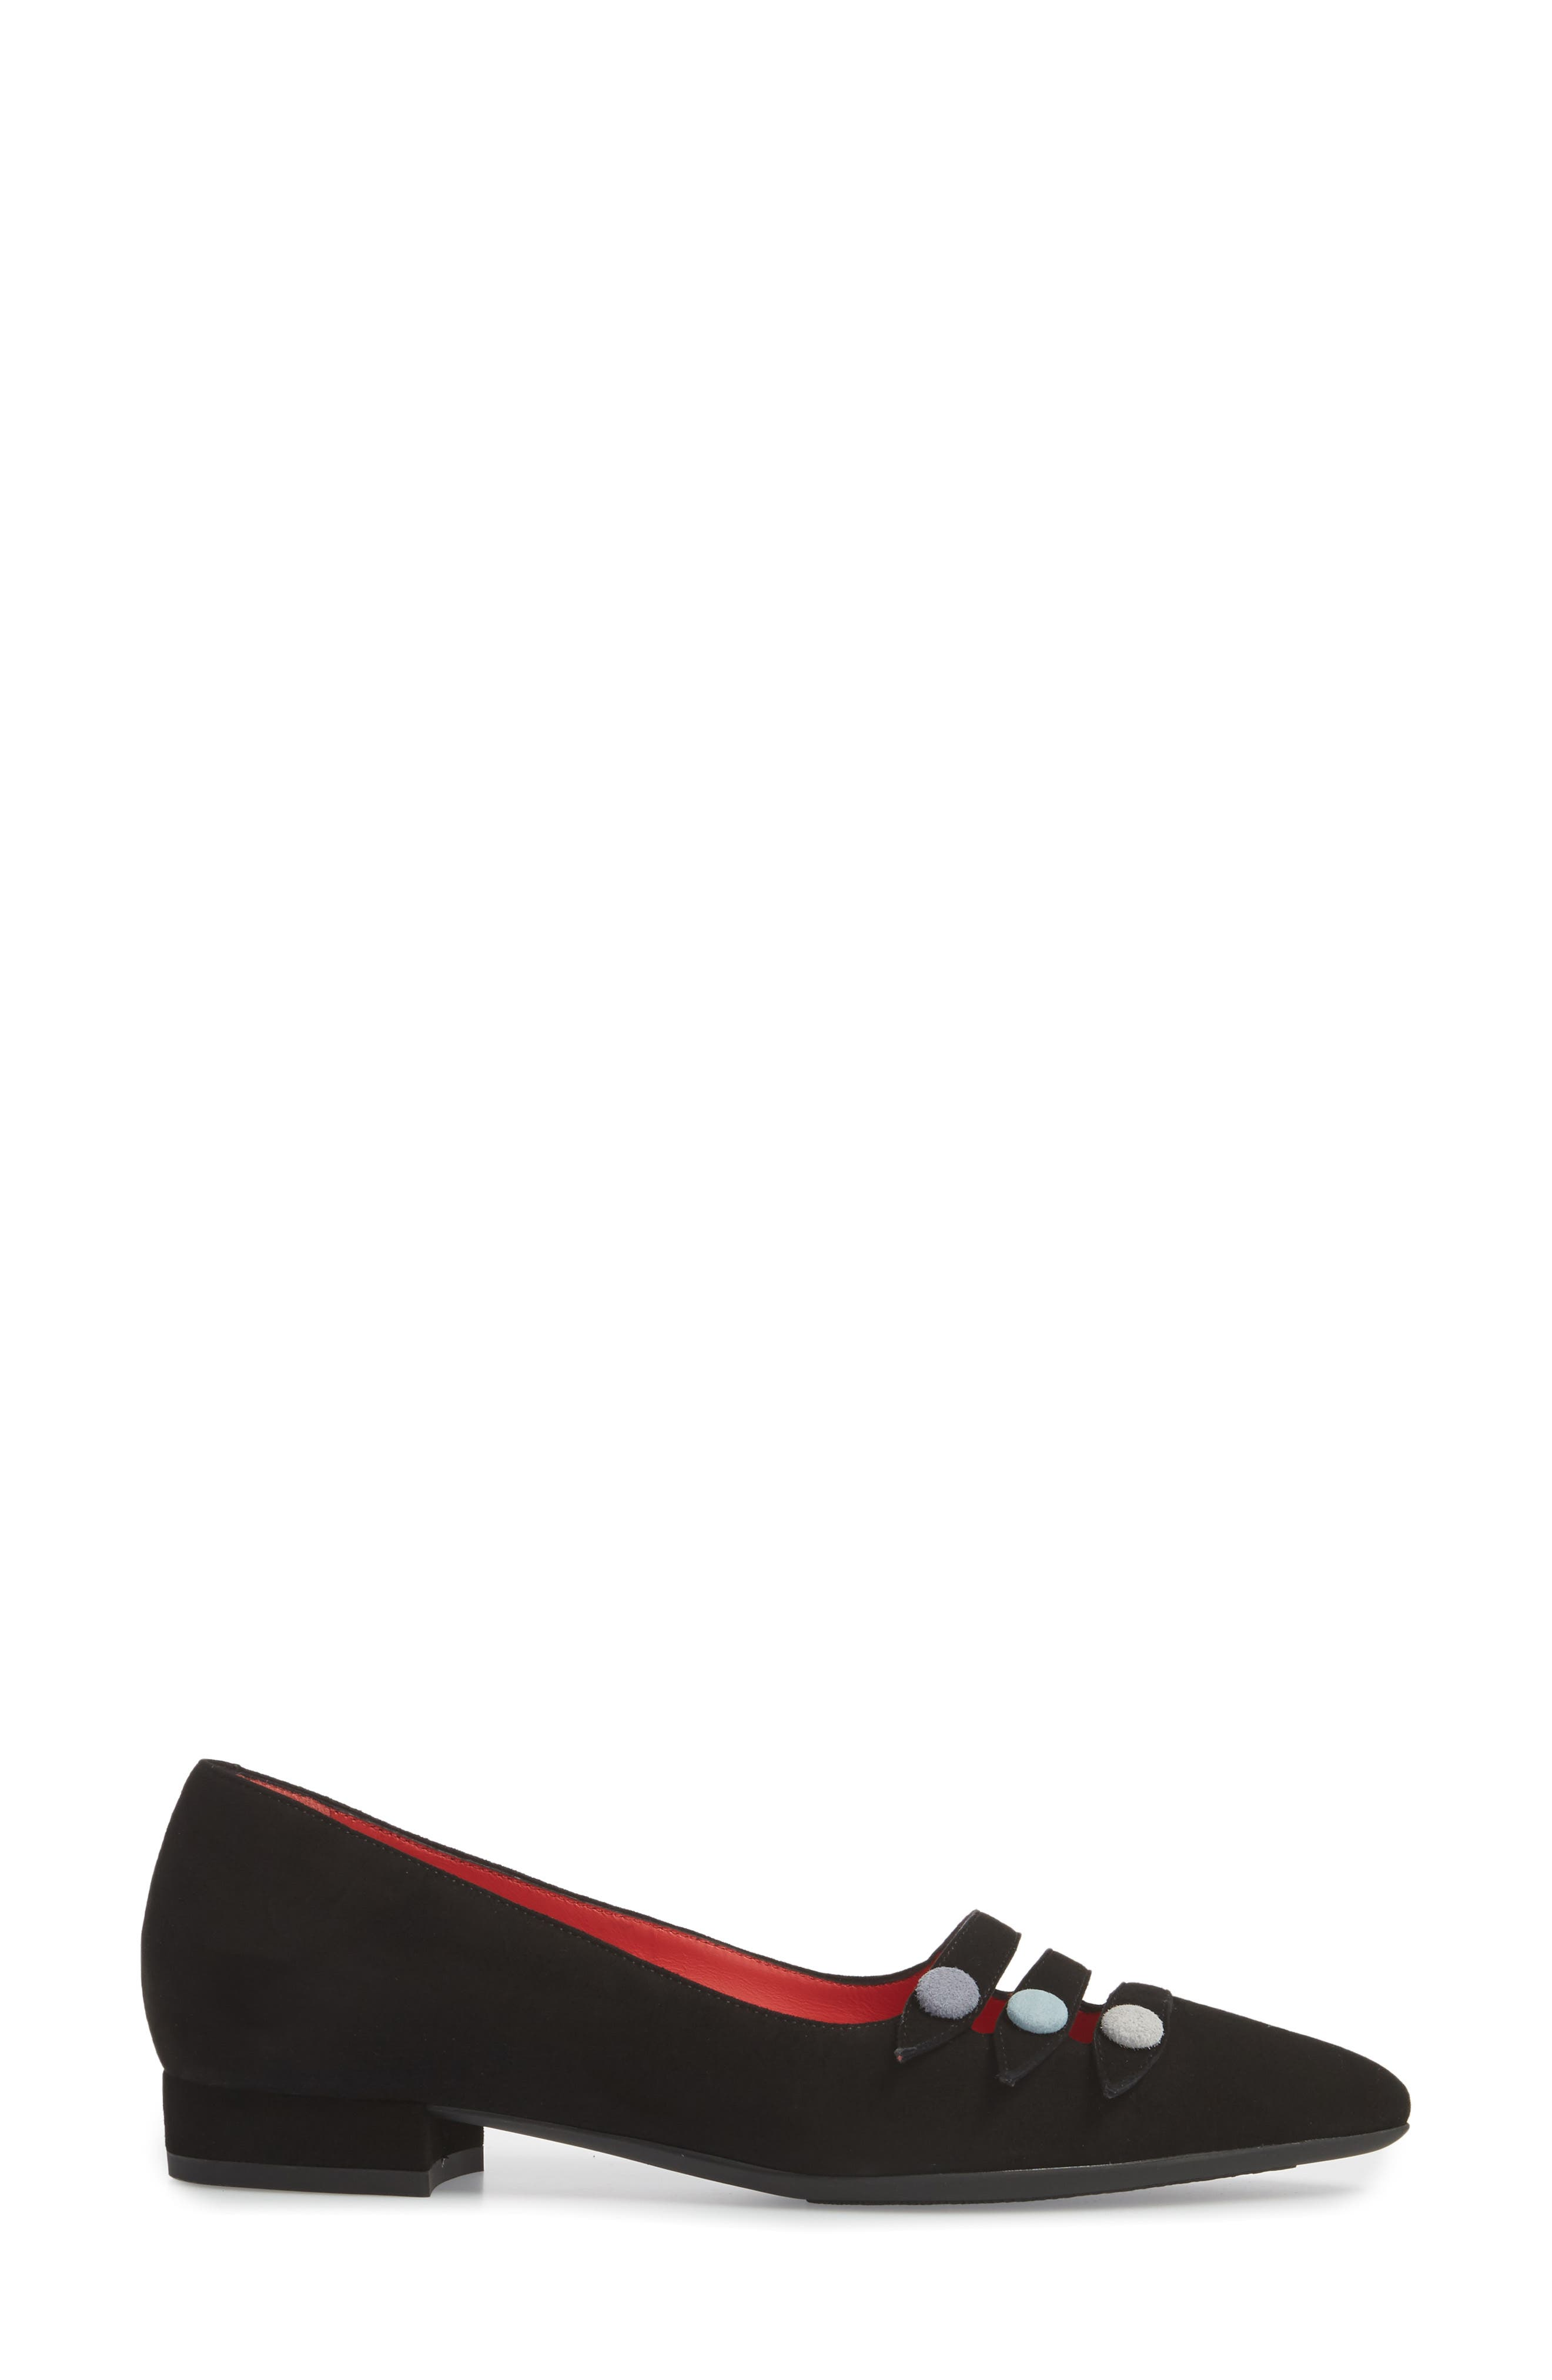 Janet Flat,                             Alternate thumbnail 3, color,                             BLACK LEATHER/ SUEDE